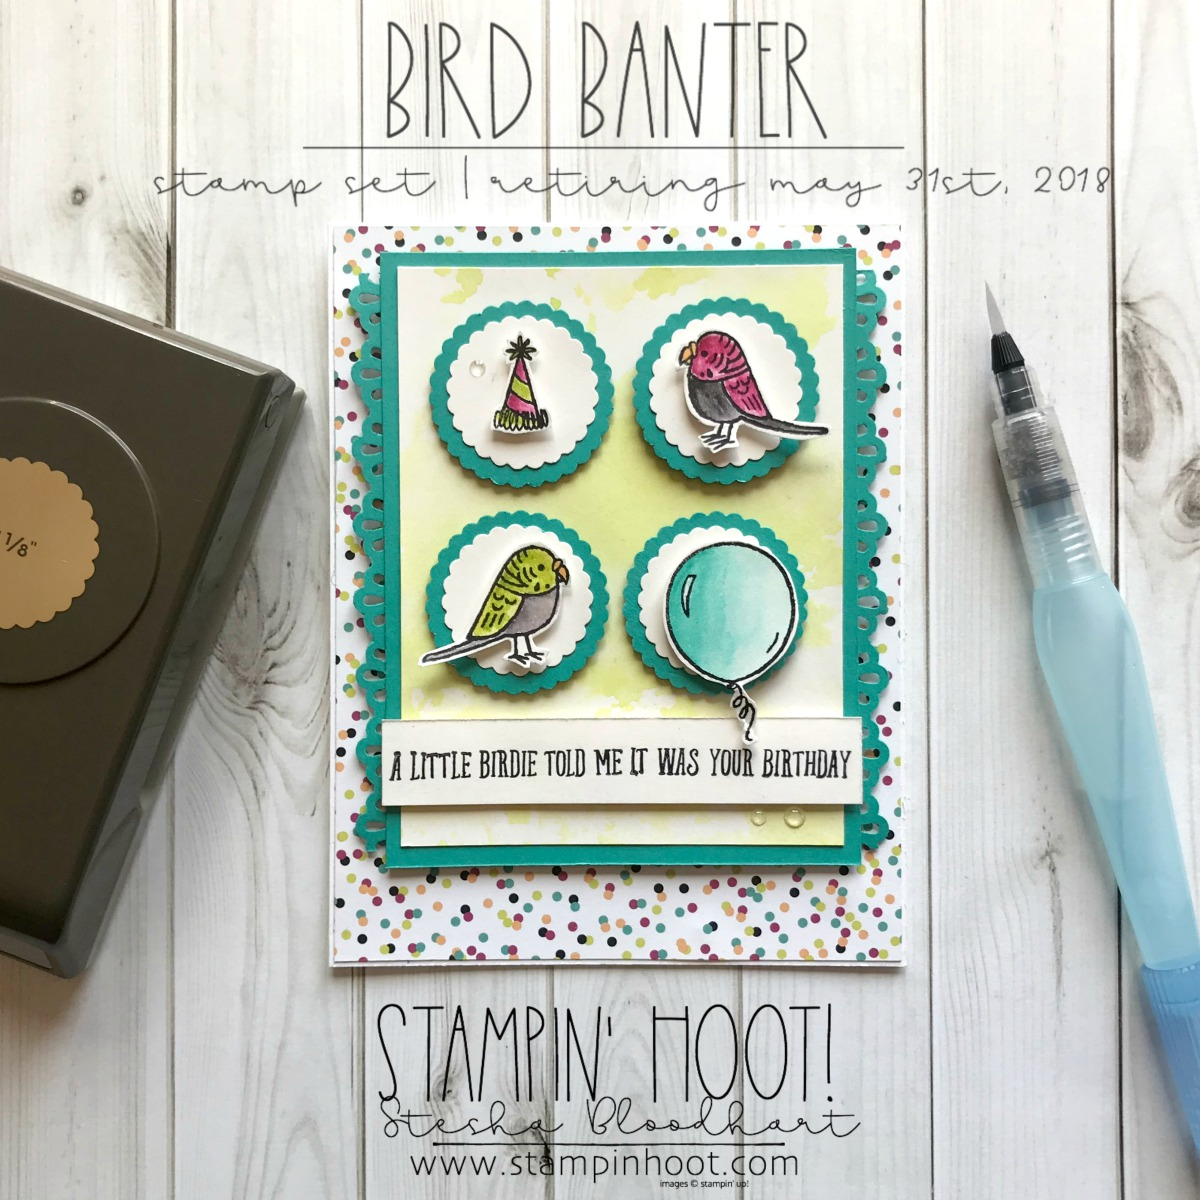 Bird Banter Birthday Card for the #GDP136 Case the Designer Challenge. Birthday Card created by Stesha Bloodhart, Stampin' Hoot! #steshabloodhart #stampinhoot #gdp136